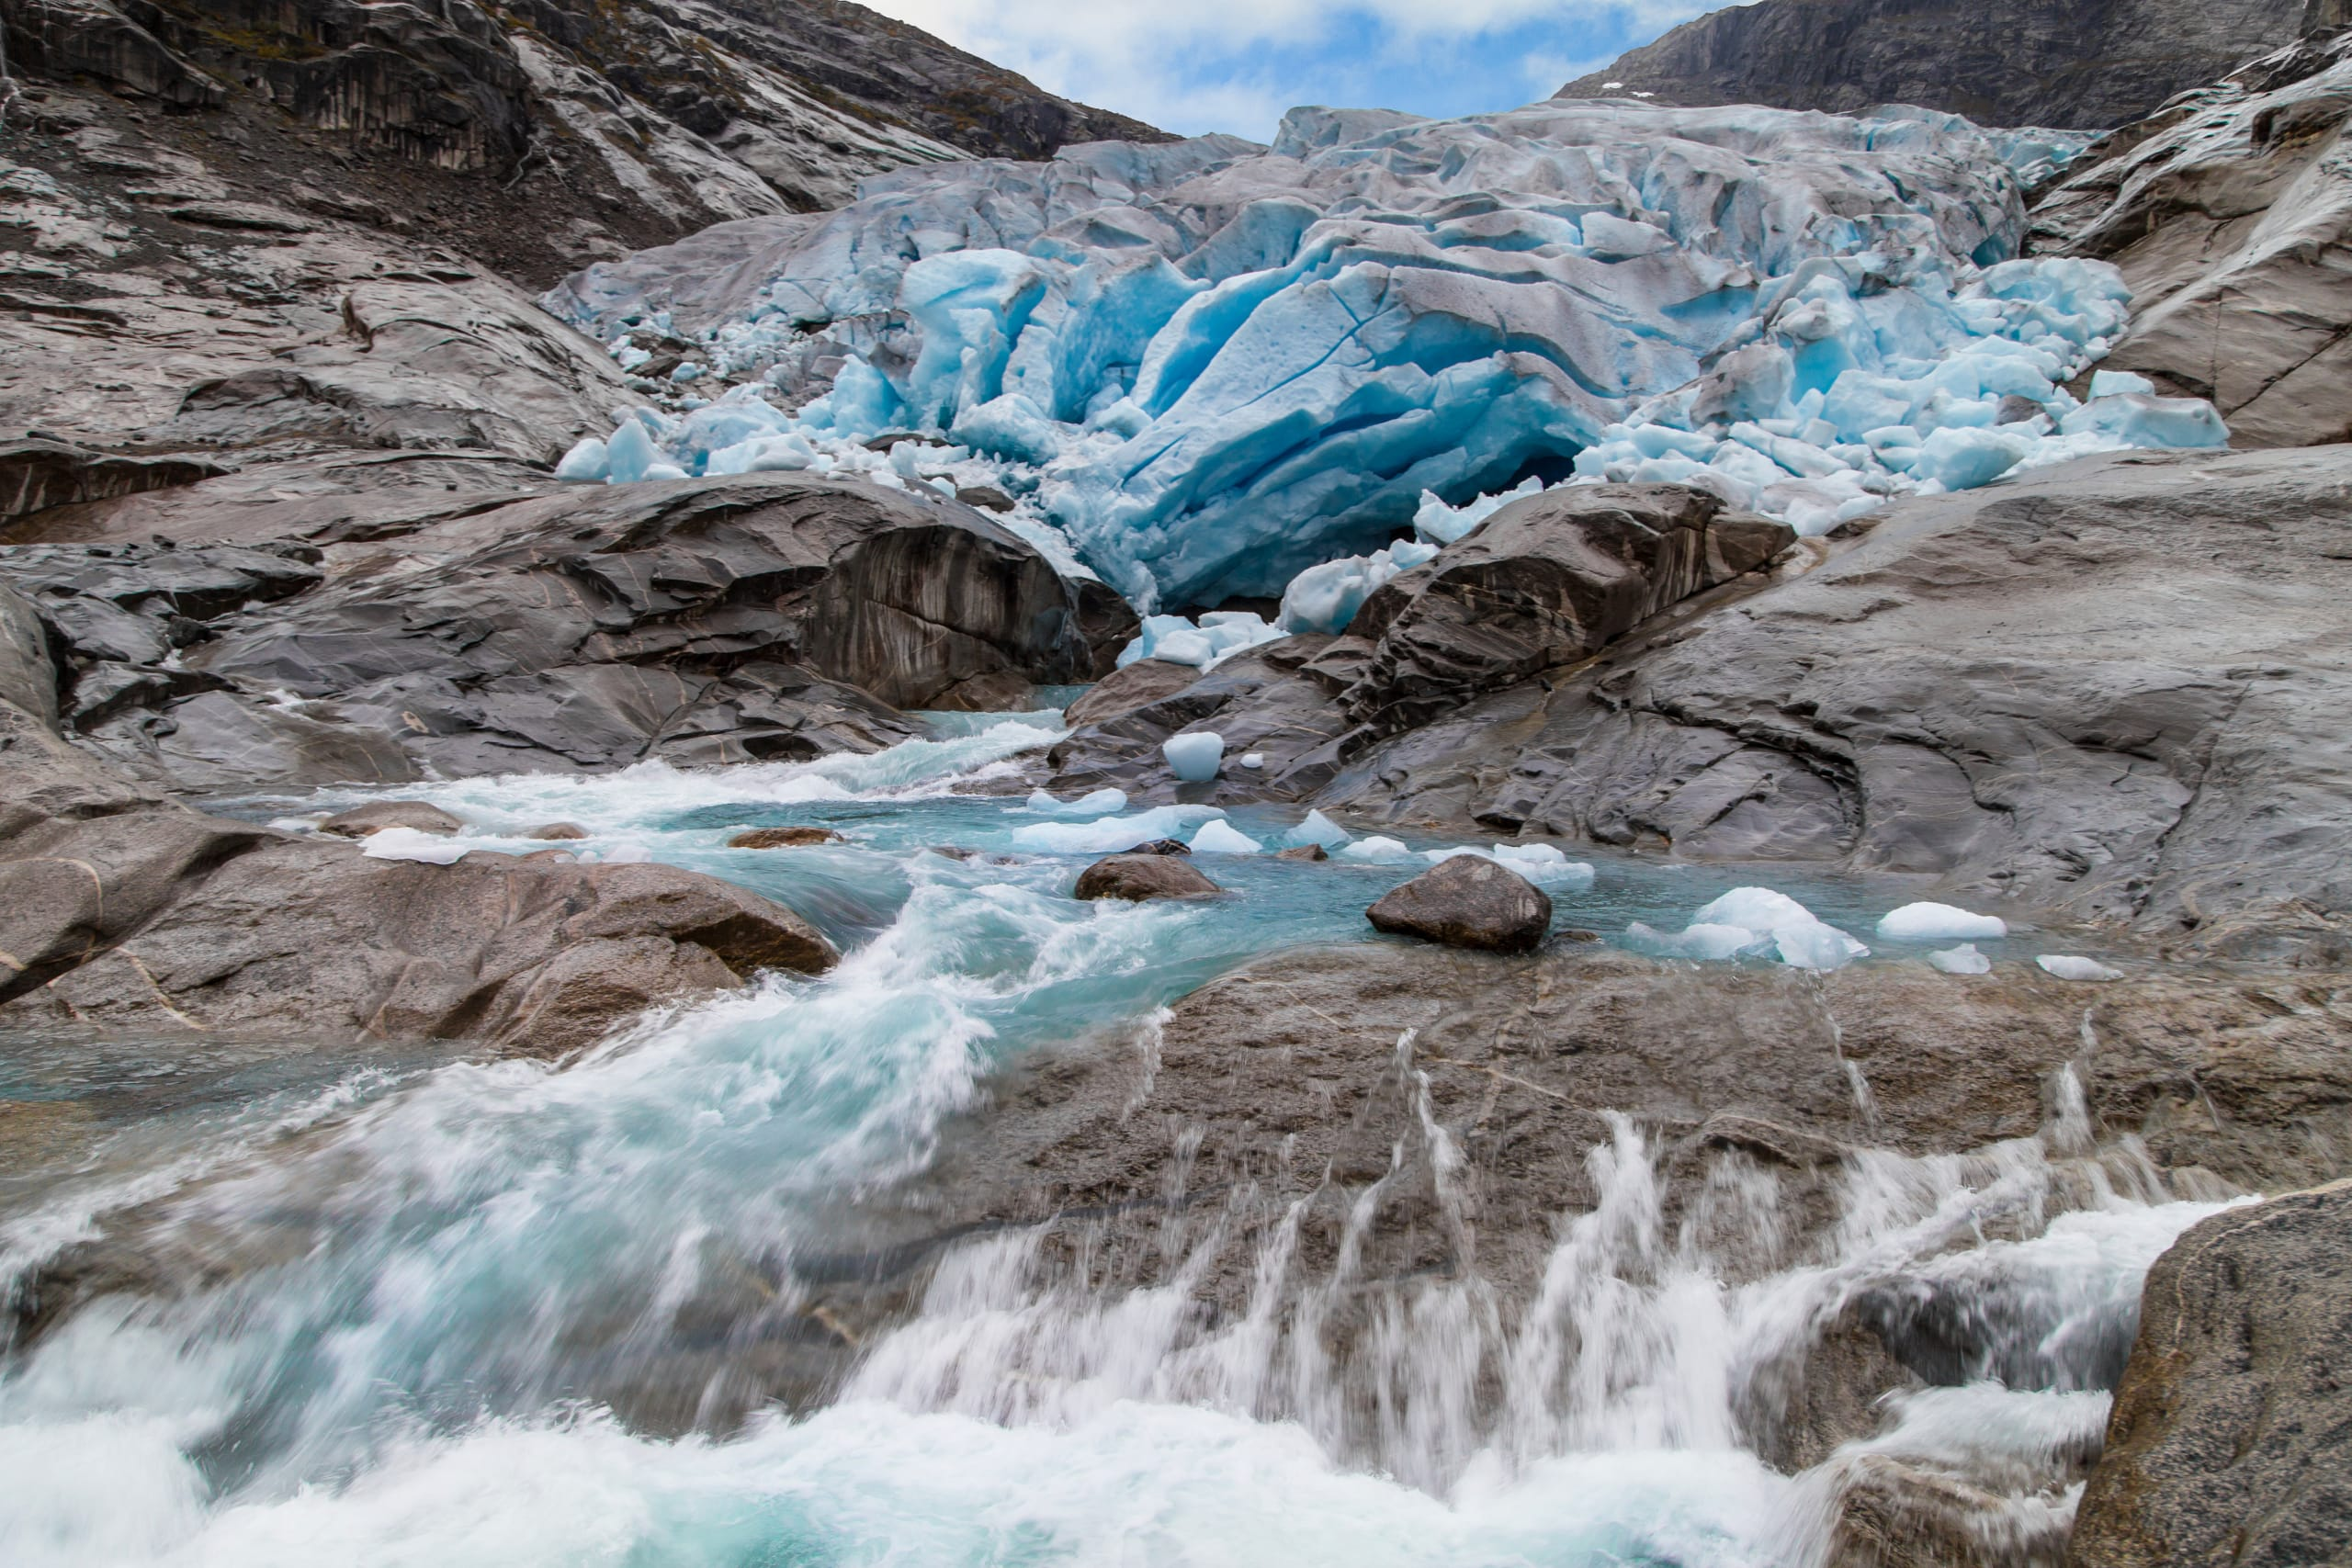 River of melt water under Nigardsbreen glacier